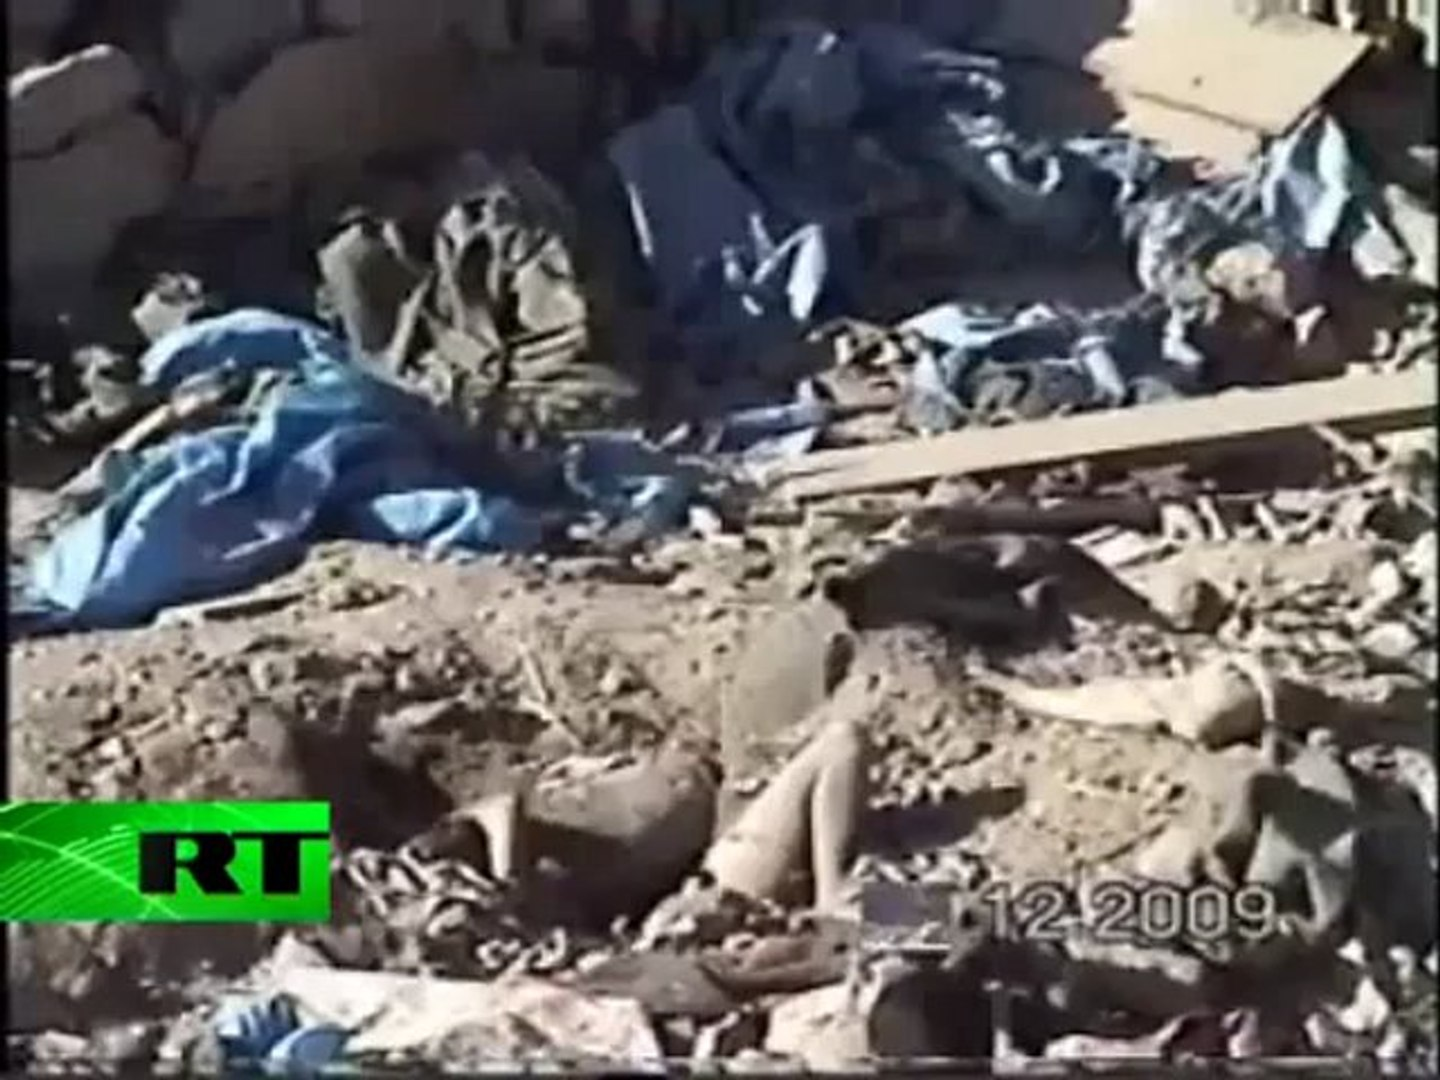 Full video of alleged air strike aftermath in Yemen